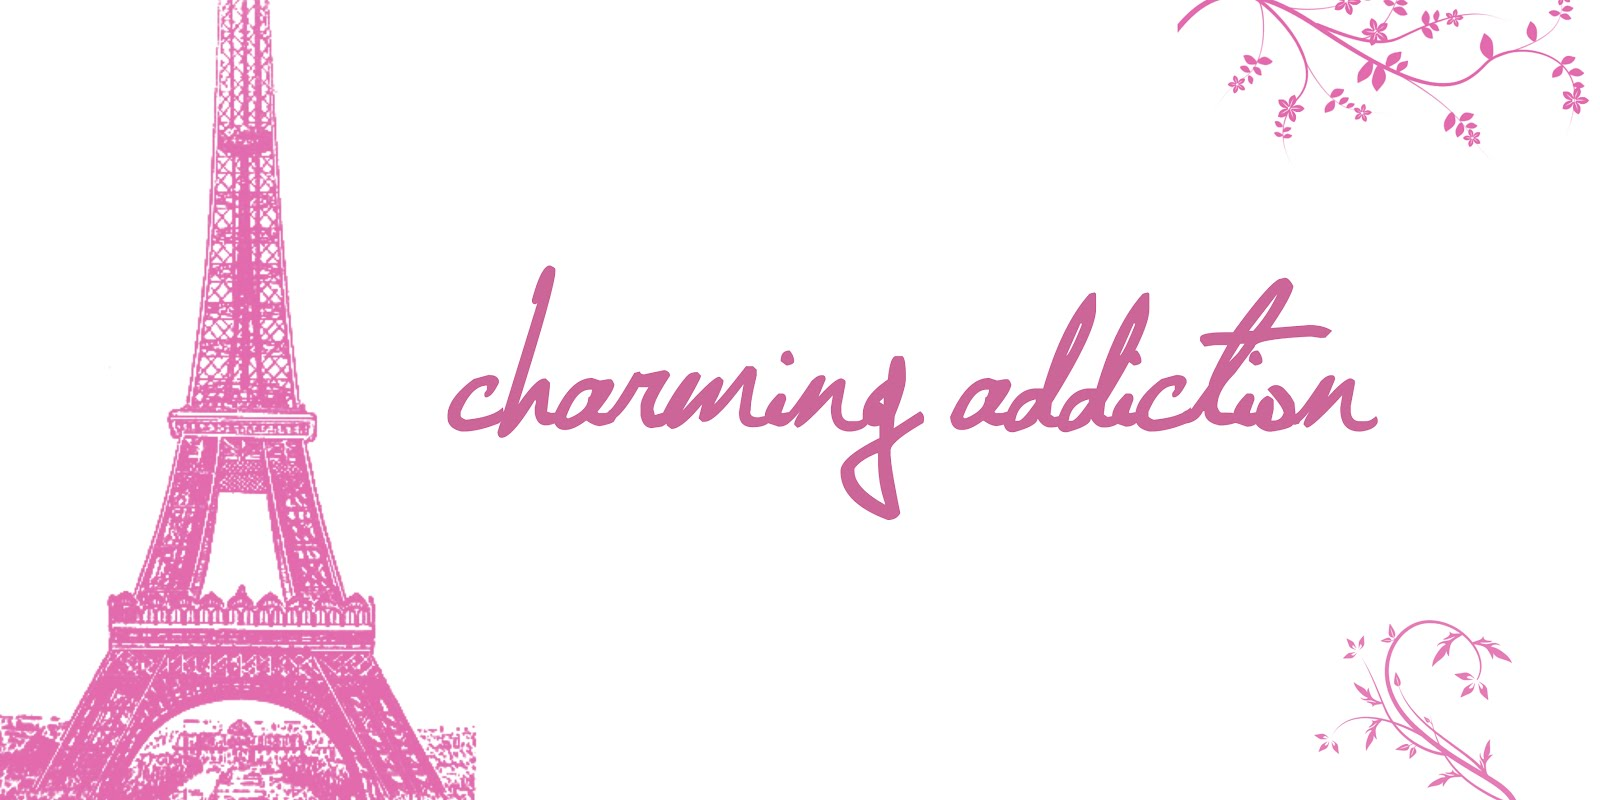 charming addiction